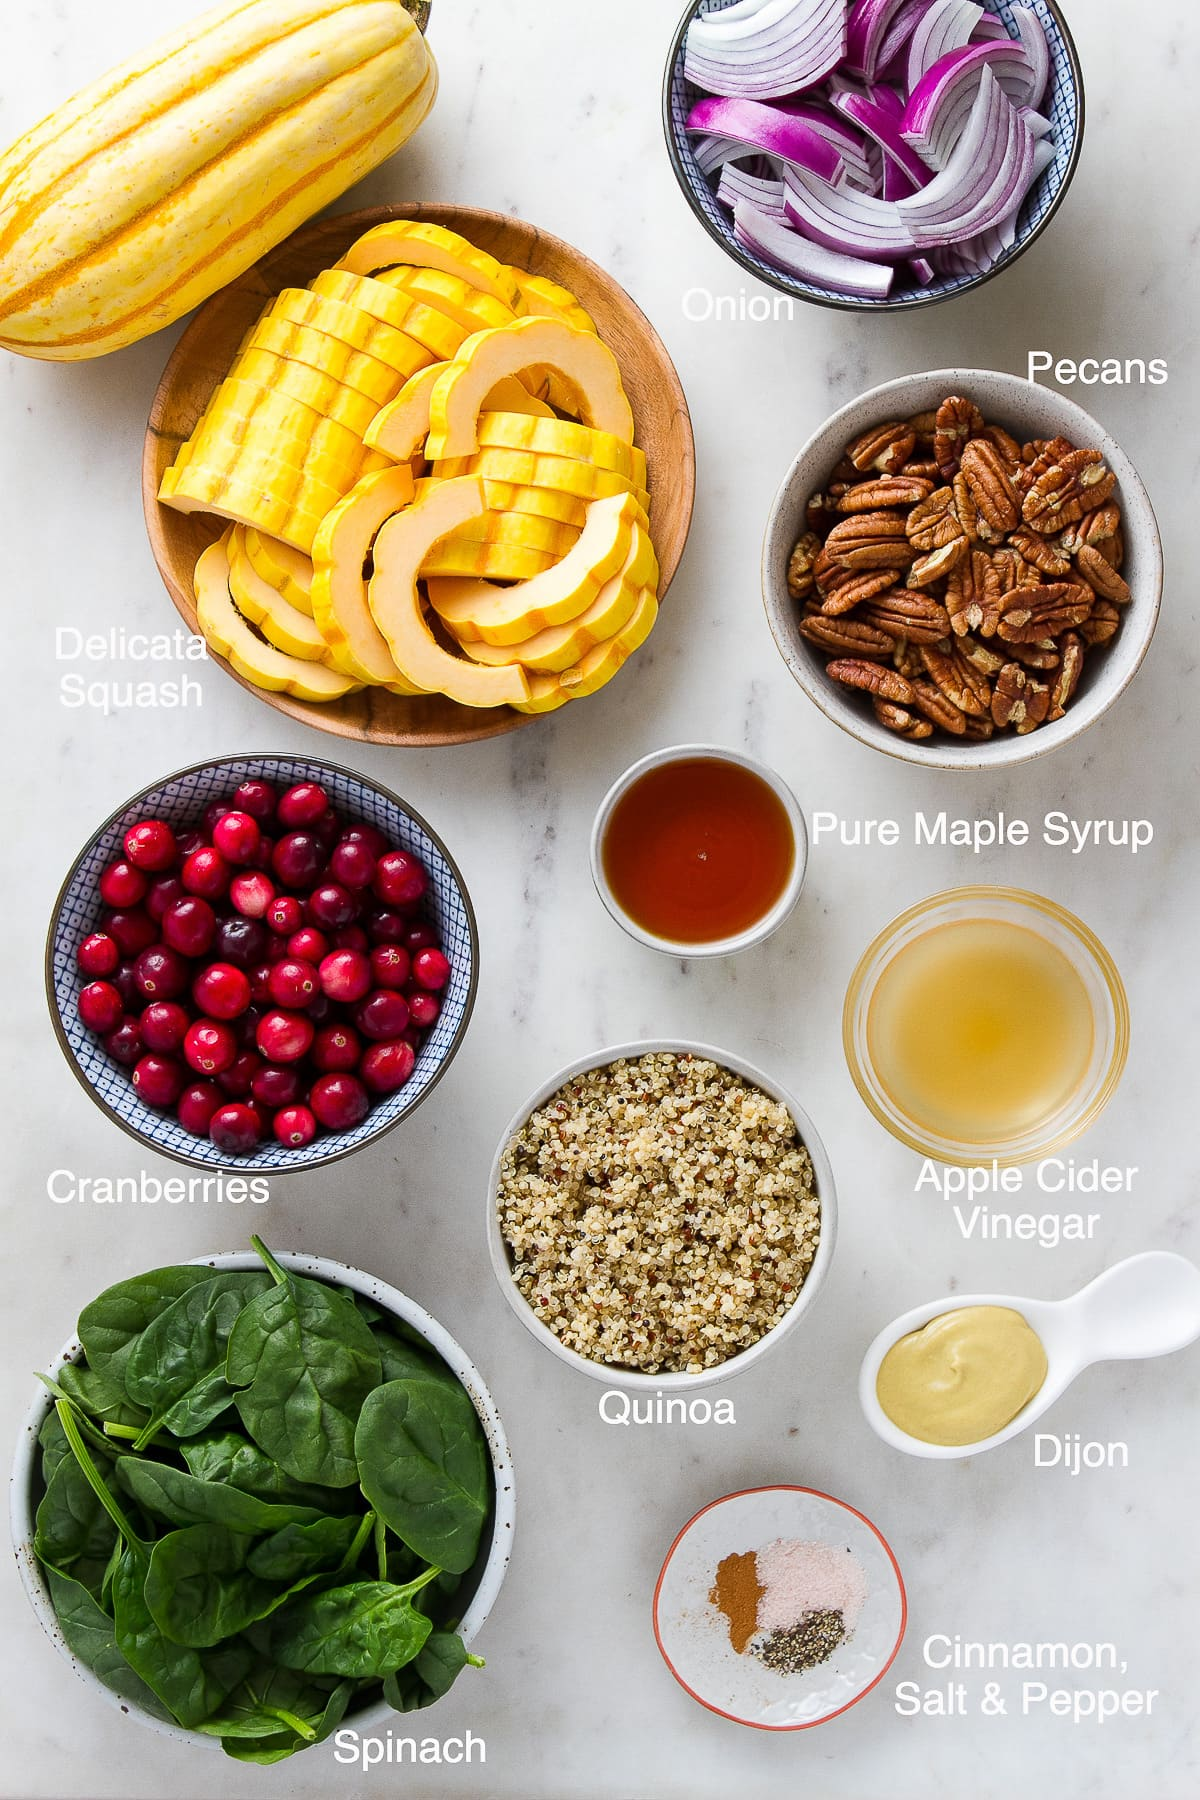 top down view of ingredients used to make delicata squash salad recipe.